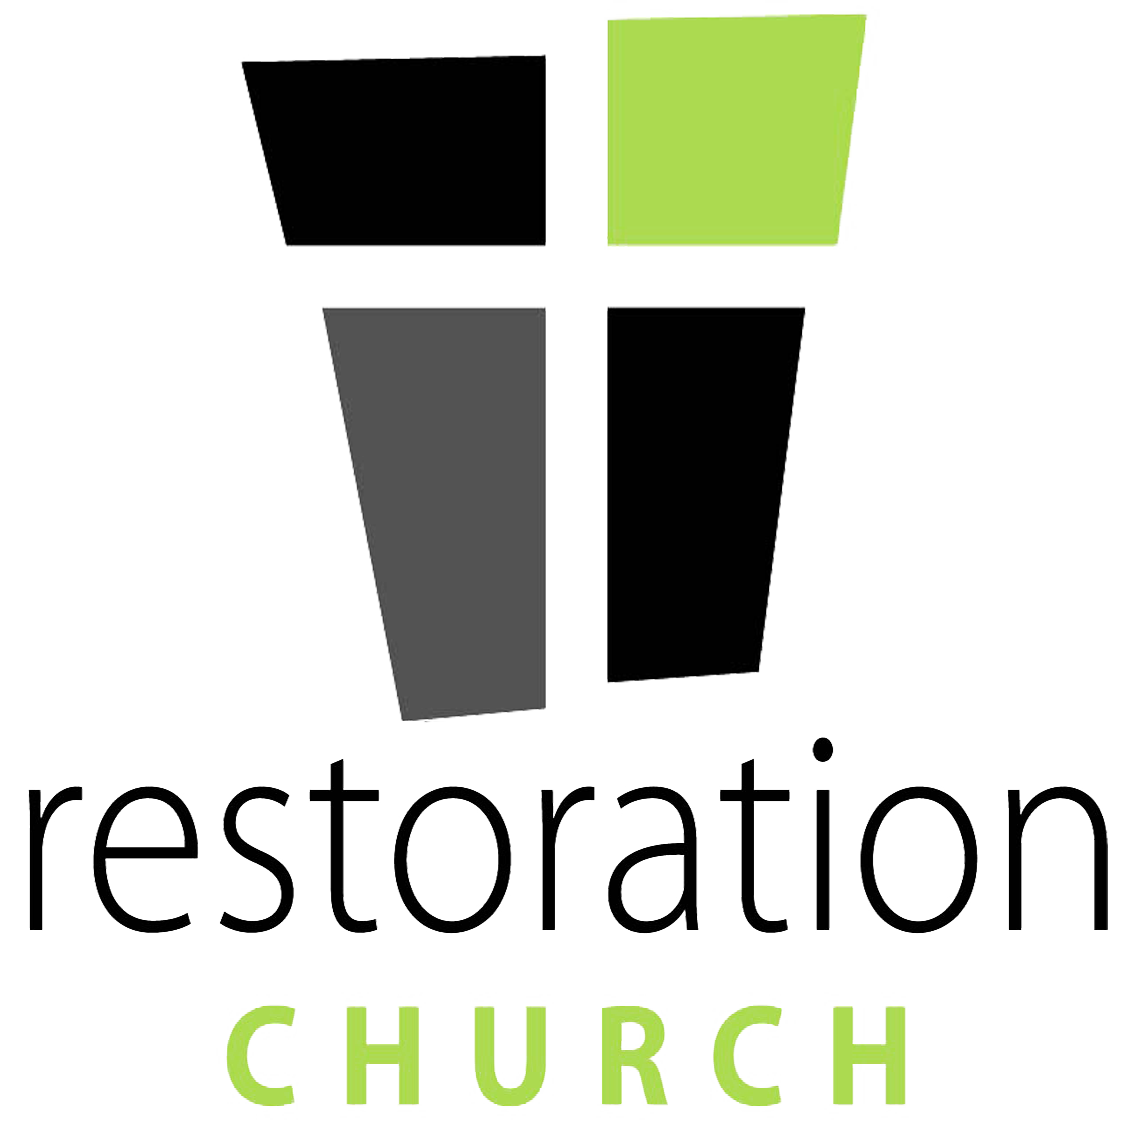 Daytona Beach Church - Restoration Logo